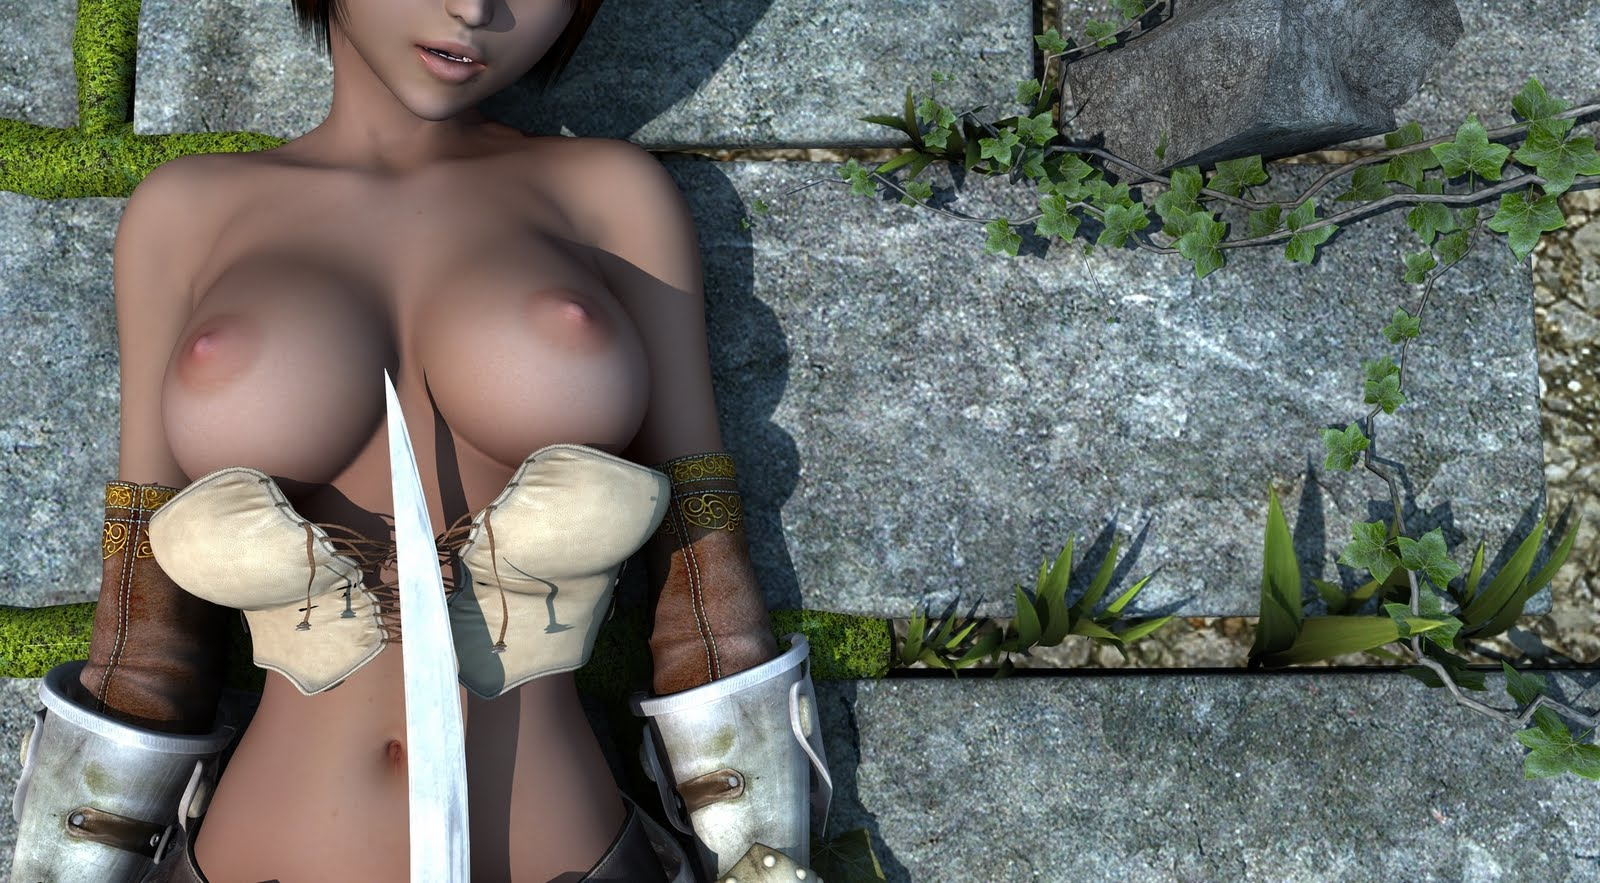 Elves nude World of Porncraft website exposed image